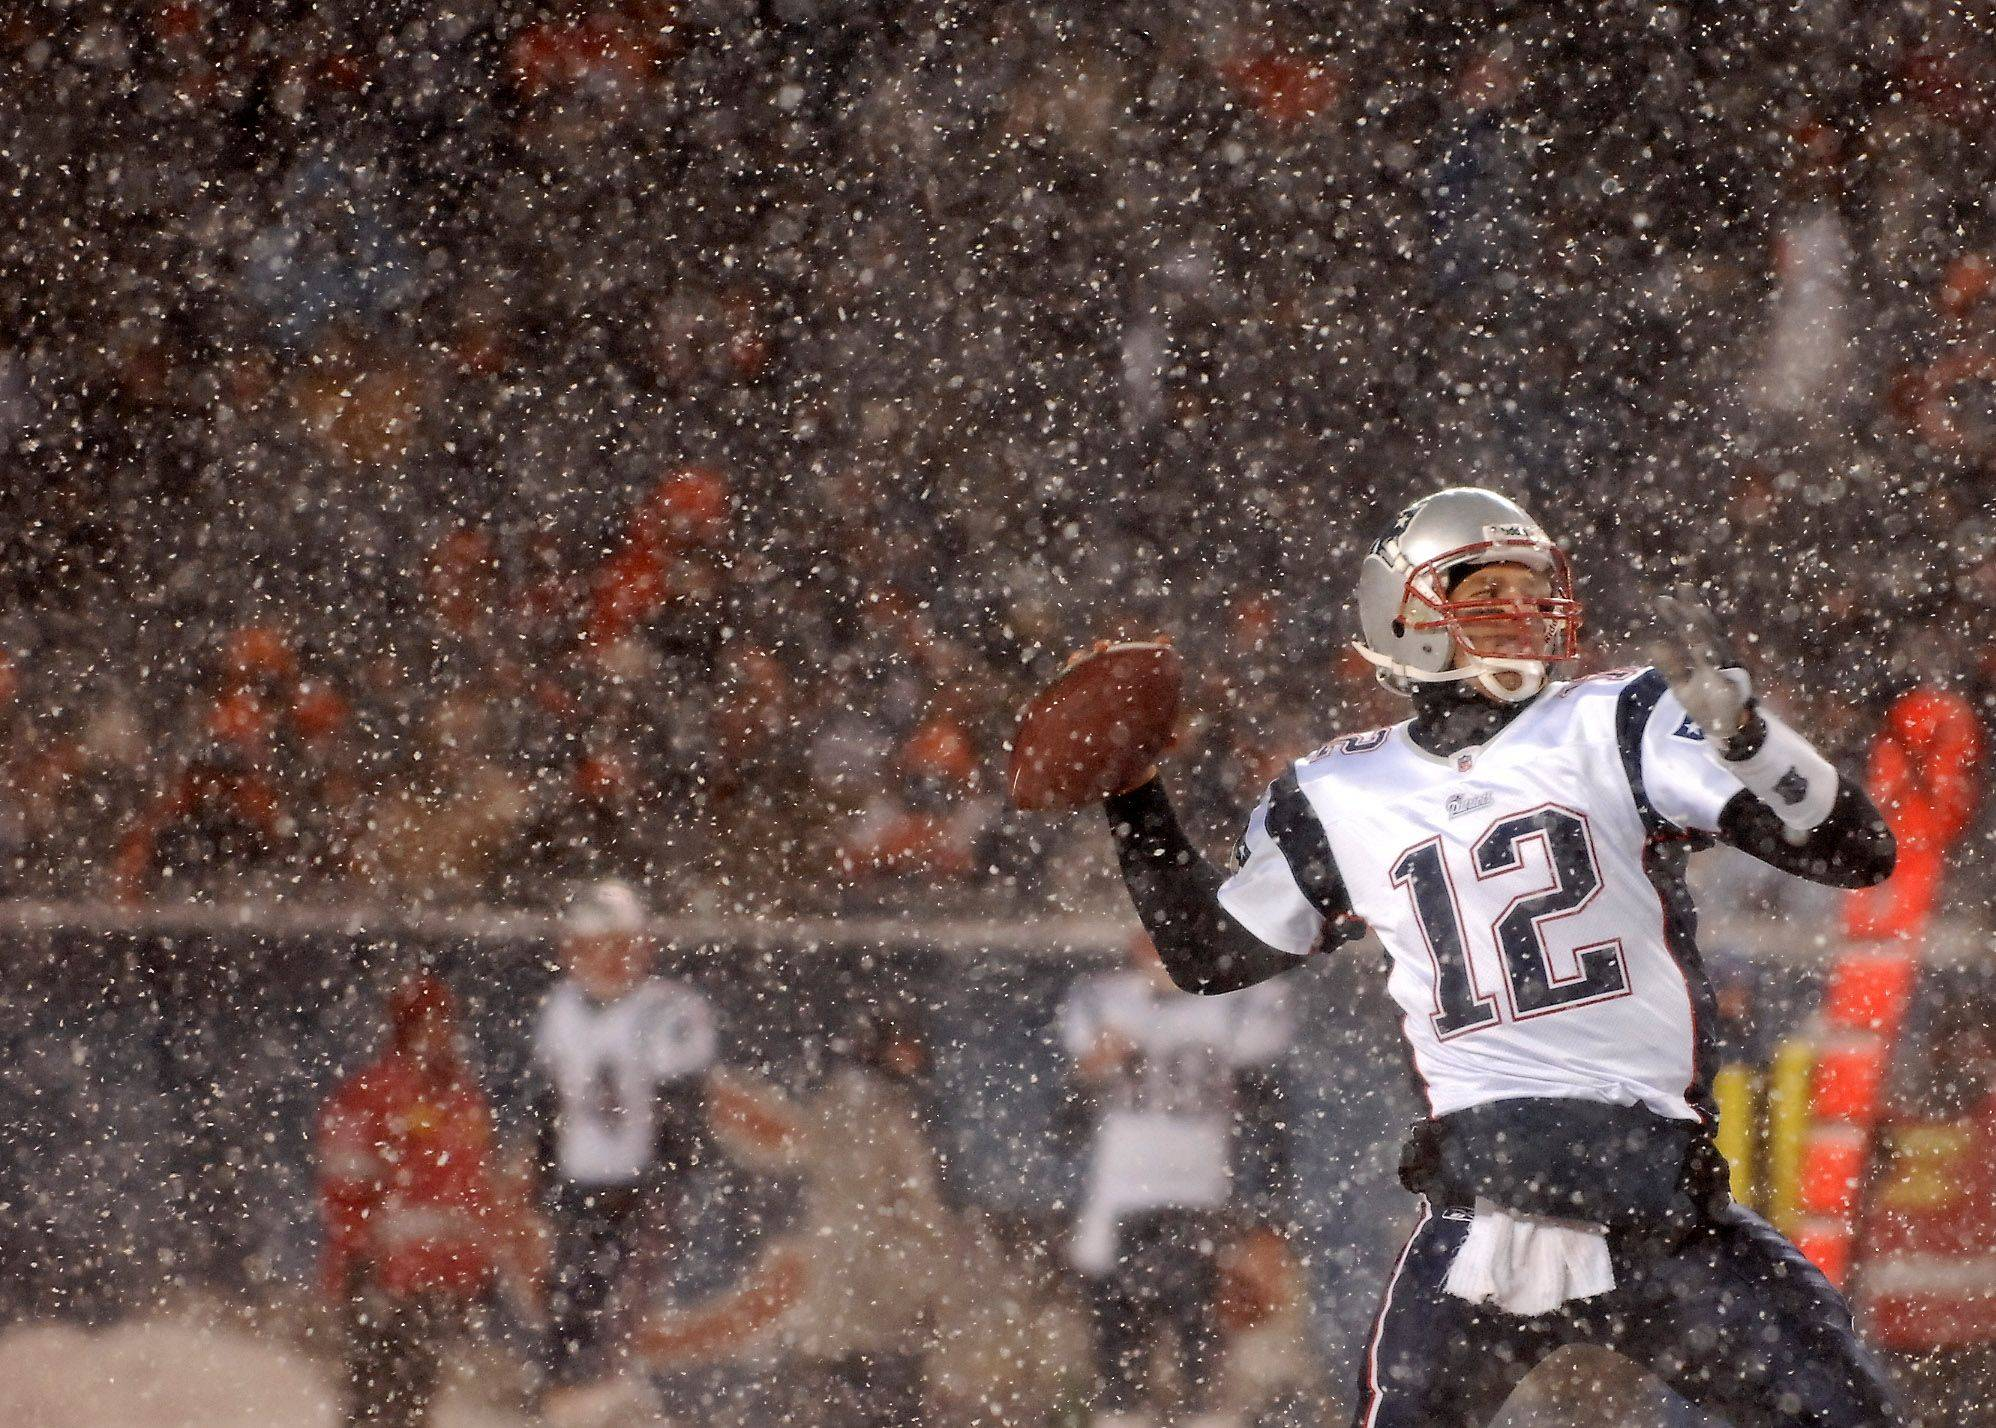 New England Patriots quarterback Tom Brady rears back to throw a long pass.